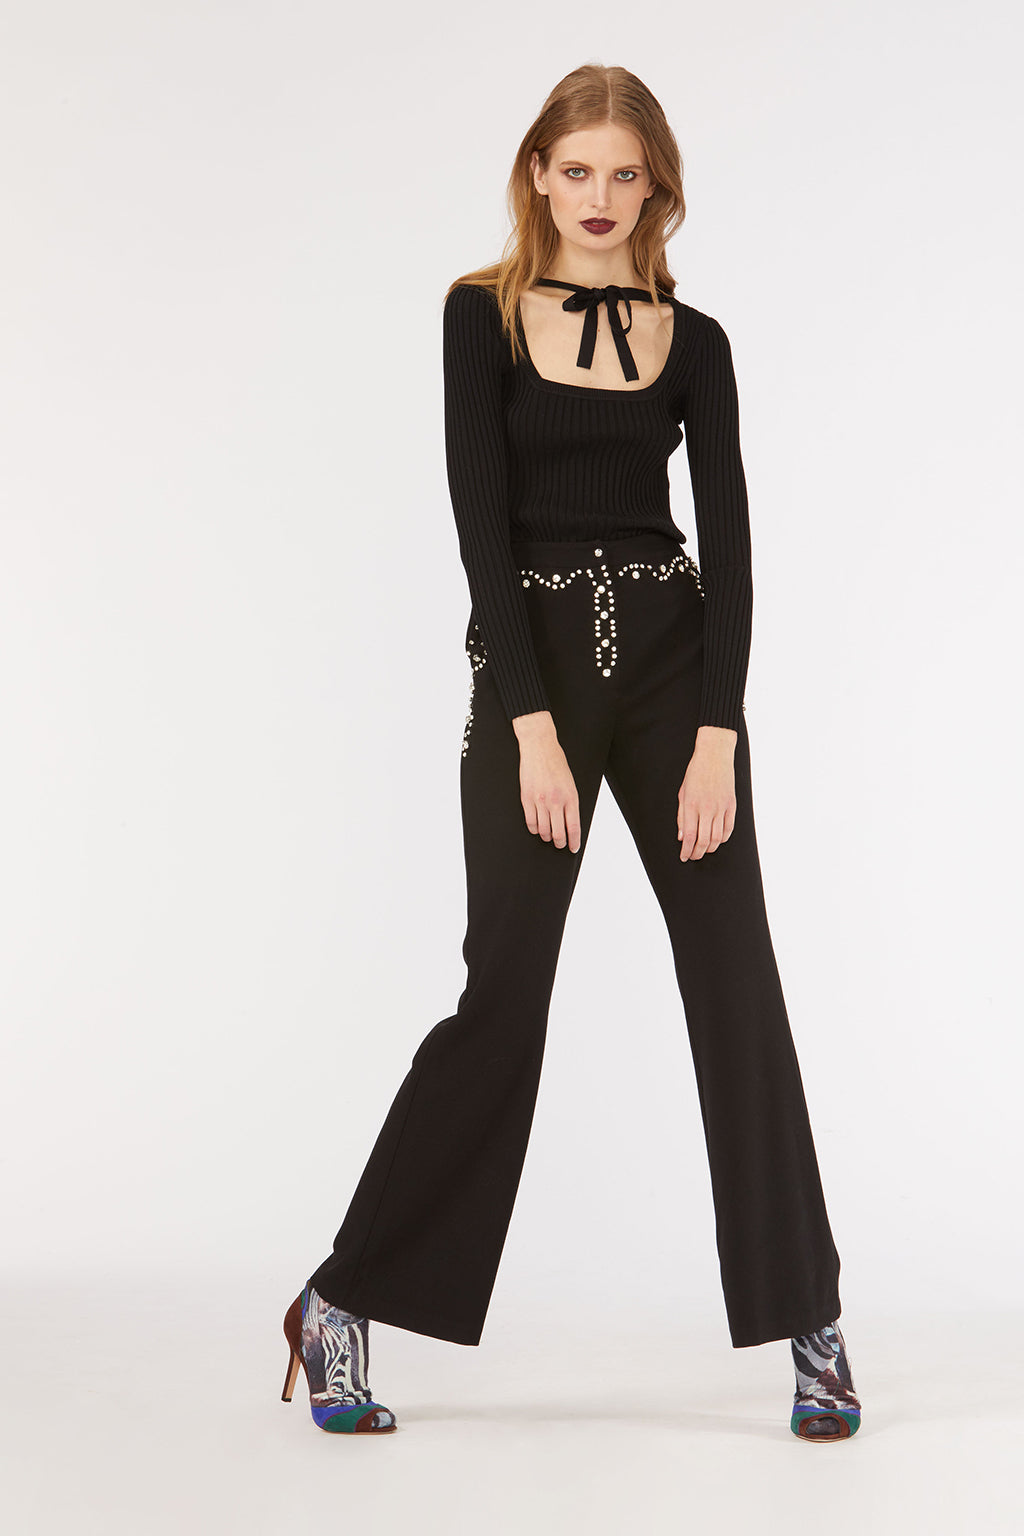 Cynthia Rowley Fall 2018 look 13 featuring black pants with rhinestone detail and a black ribbed scoop neck sweater with neck-tie.